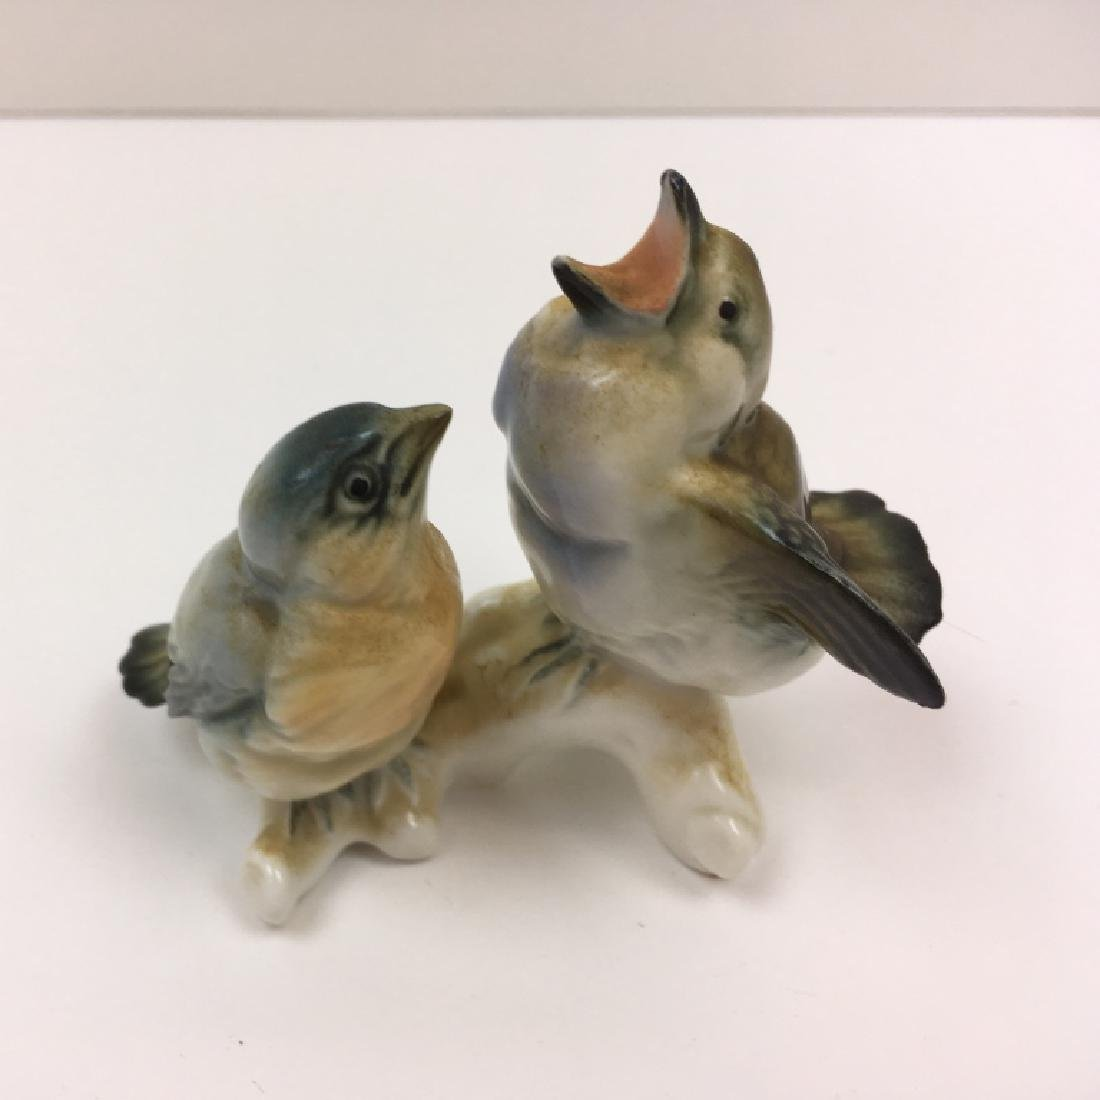 3 HAND PAINTED BIRD FIGURINES - 9